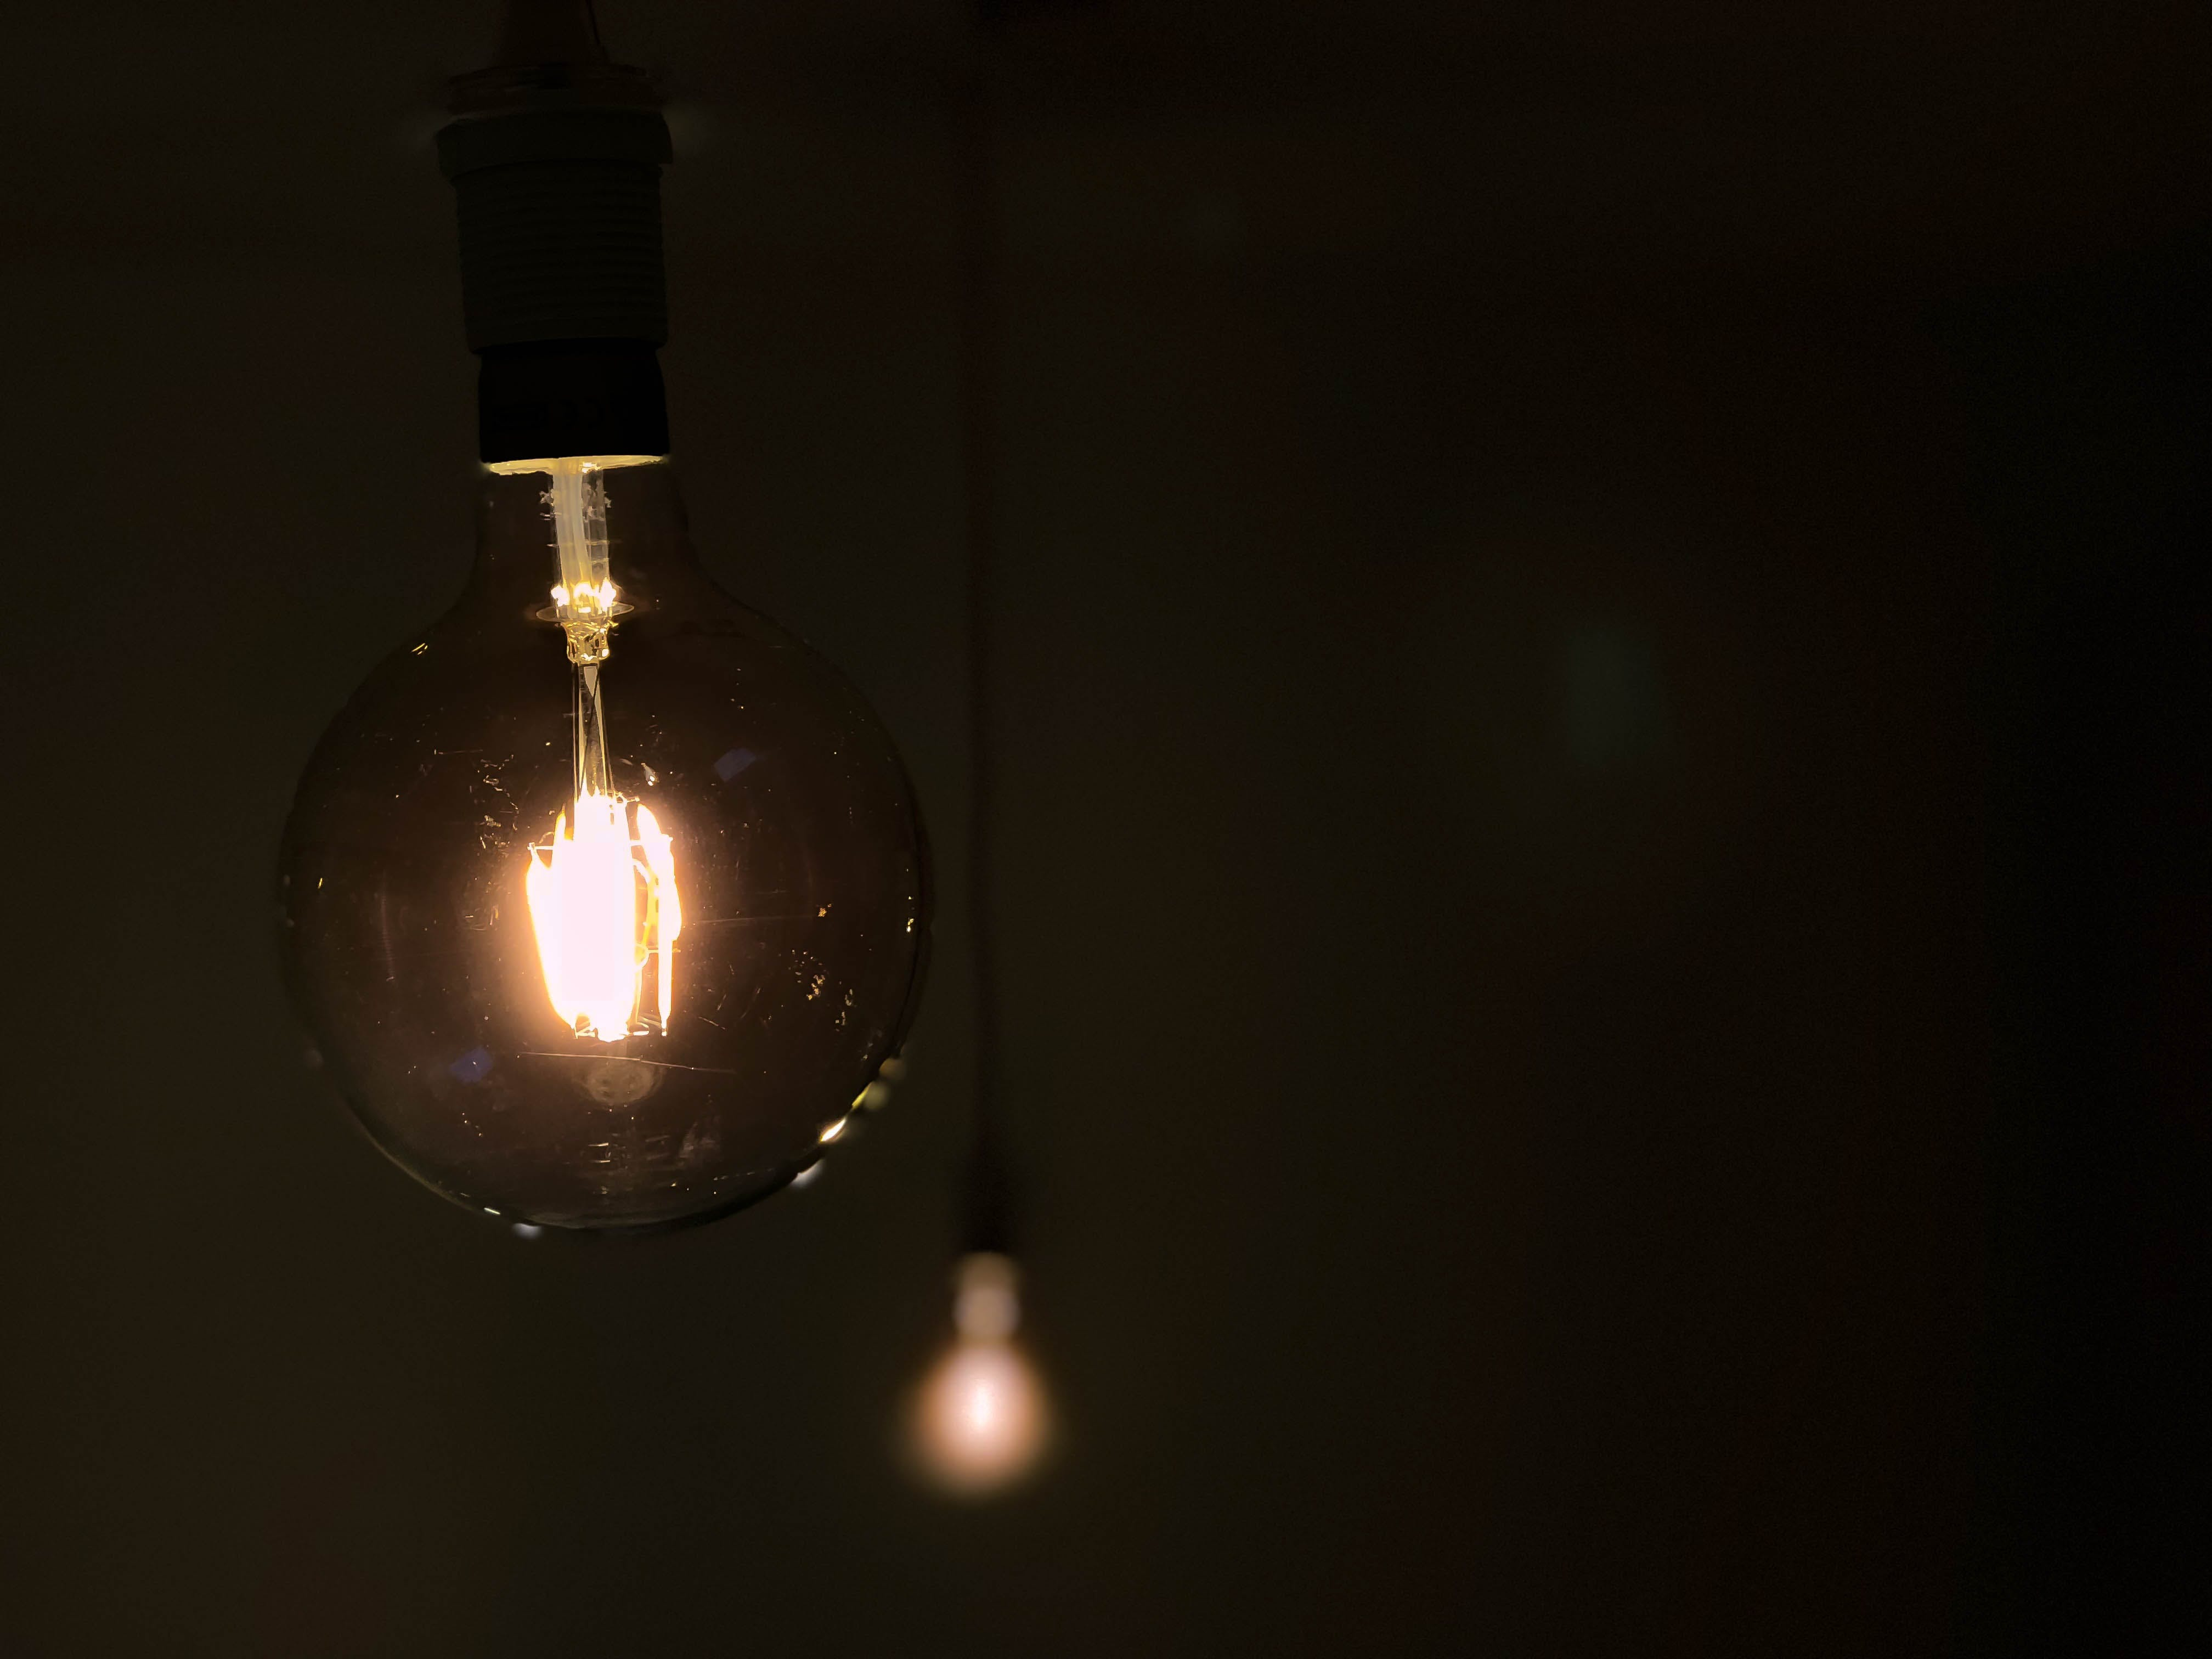 Free stock photo of dark, industrial, light, light bulb